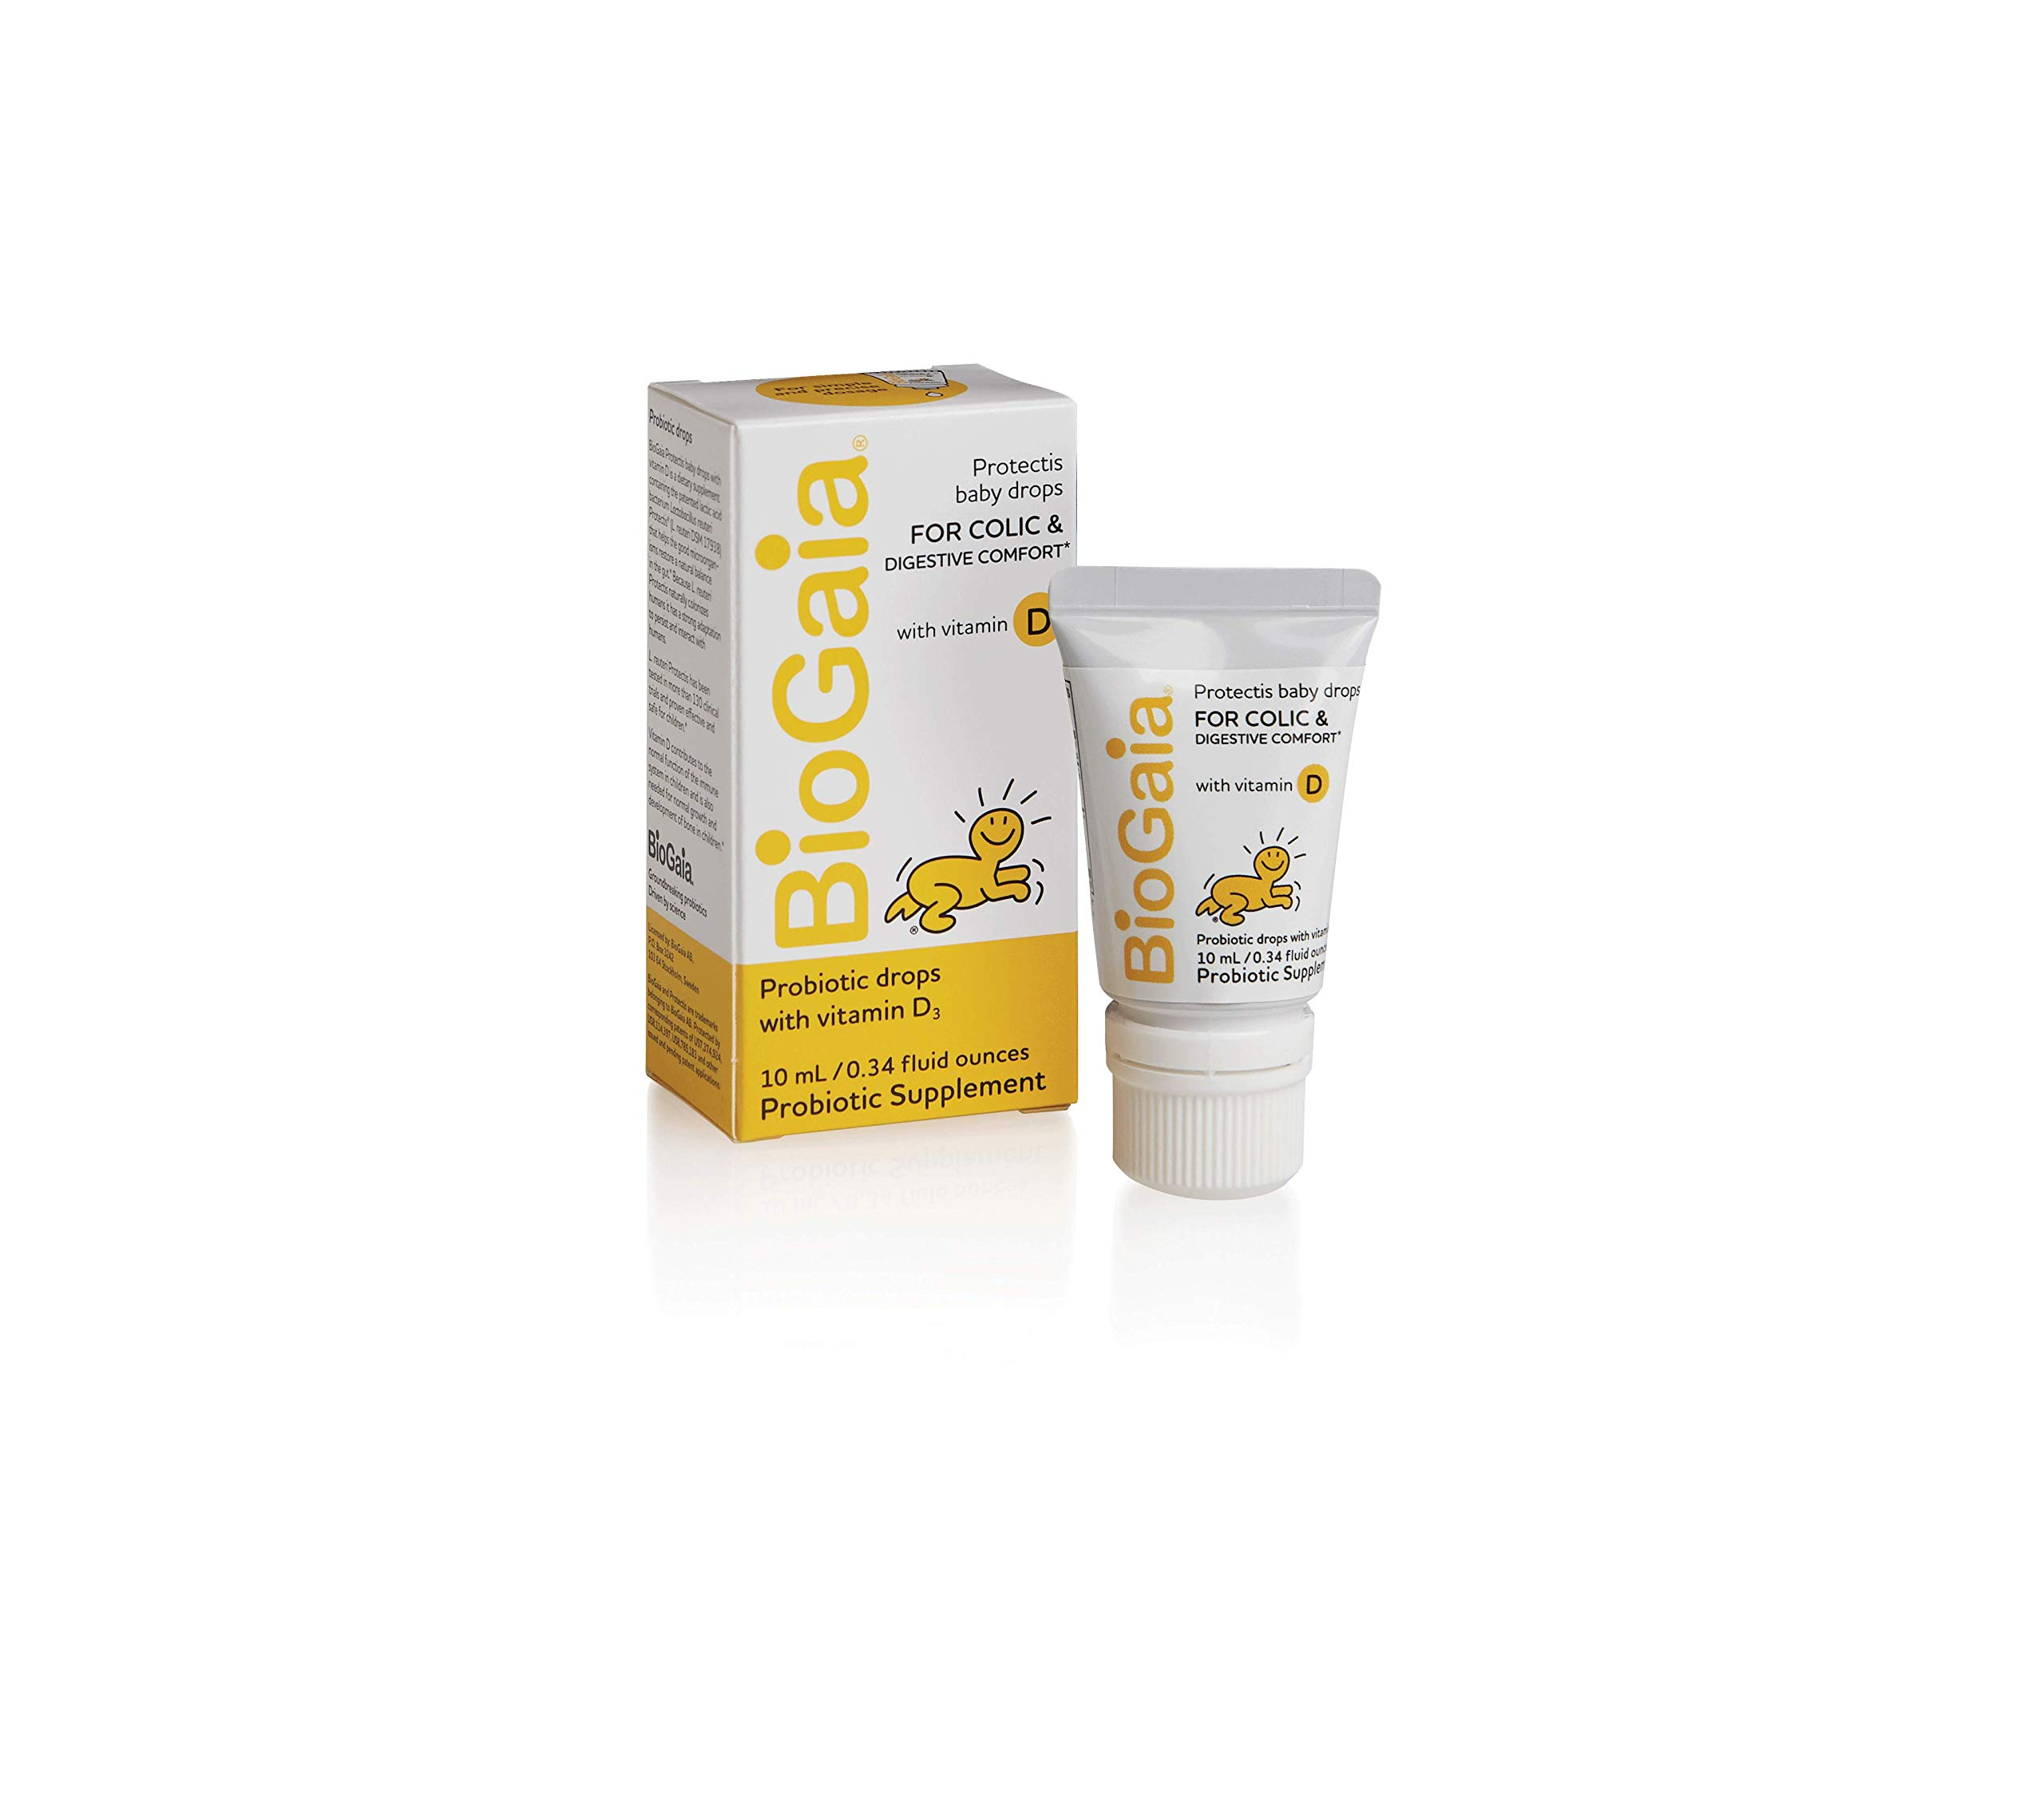 BioGaia Probiotics Drops With Vitamin D for Baby, Infants, Newborn and Kids Colic, Spit-Up, Constipation and Digestive Comfort, #1 Pediatrician Recommended Probiotic for Colic,10 ML by BioGaia